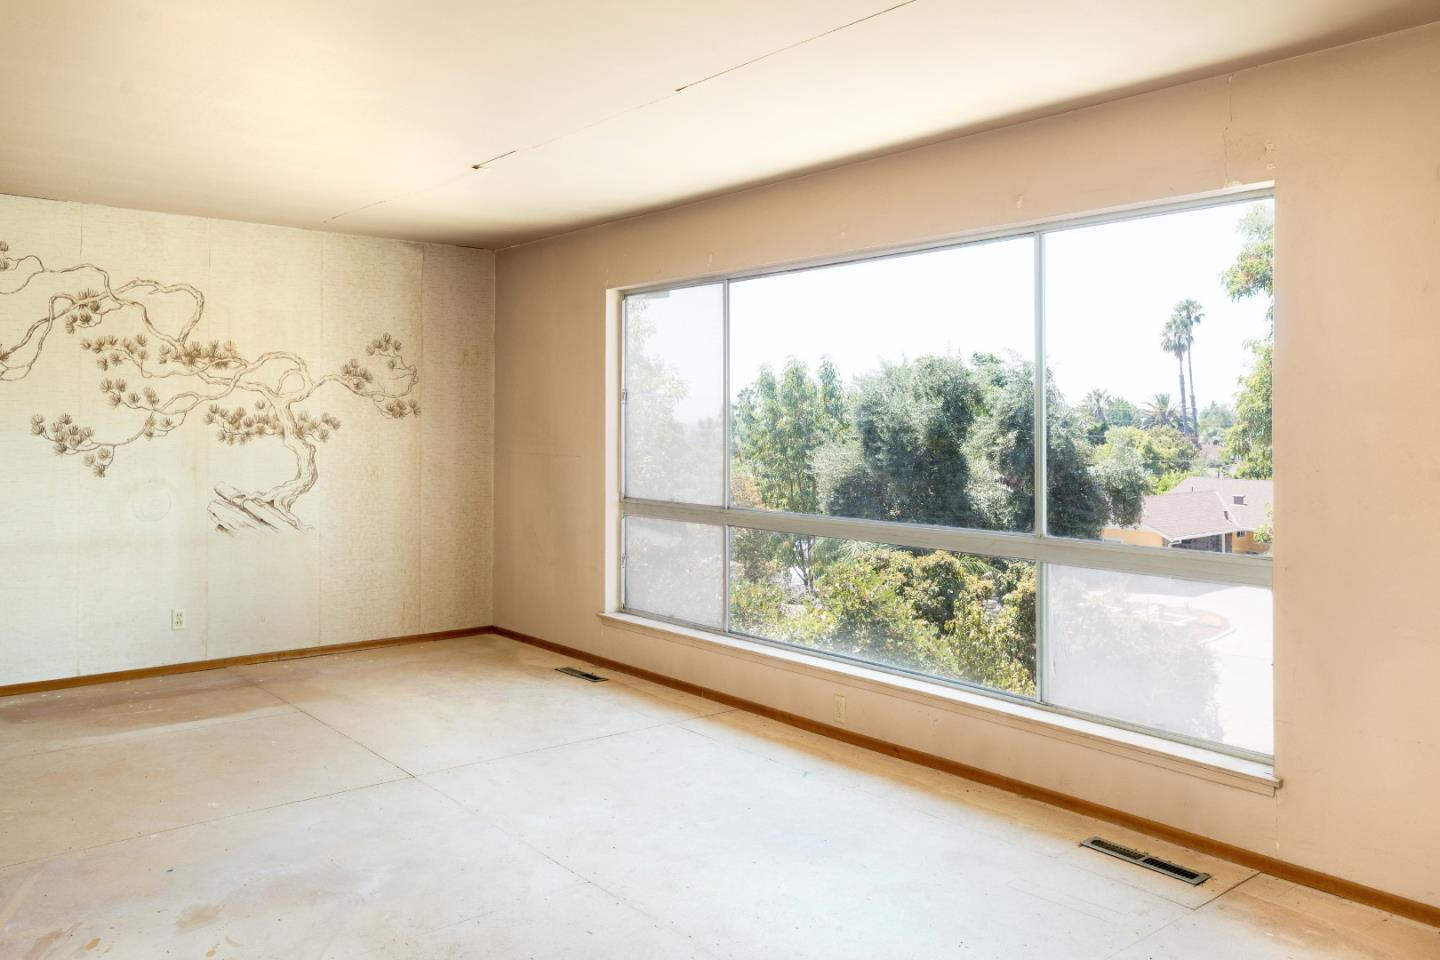 Additional photo for property listing at 14906 Reynaud Drive  San Jose, Californie 95127 États-Unis